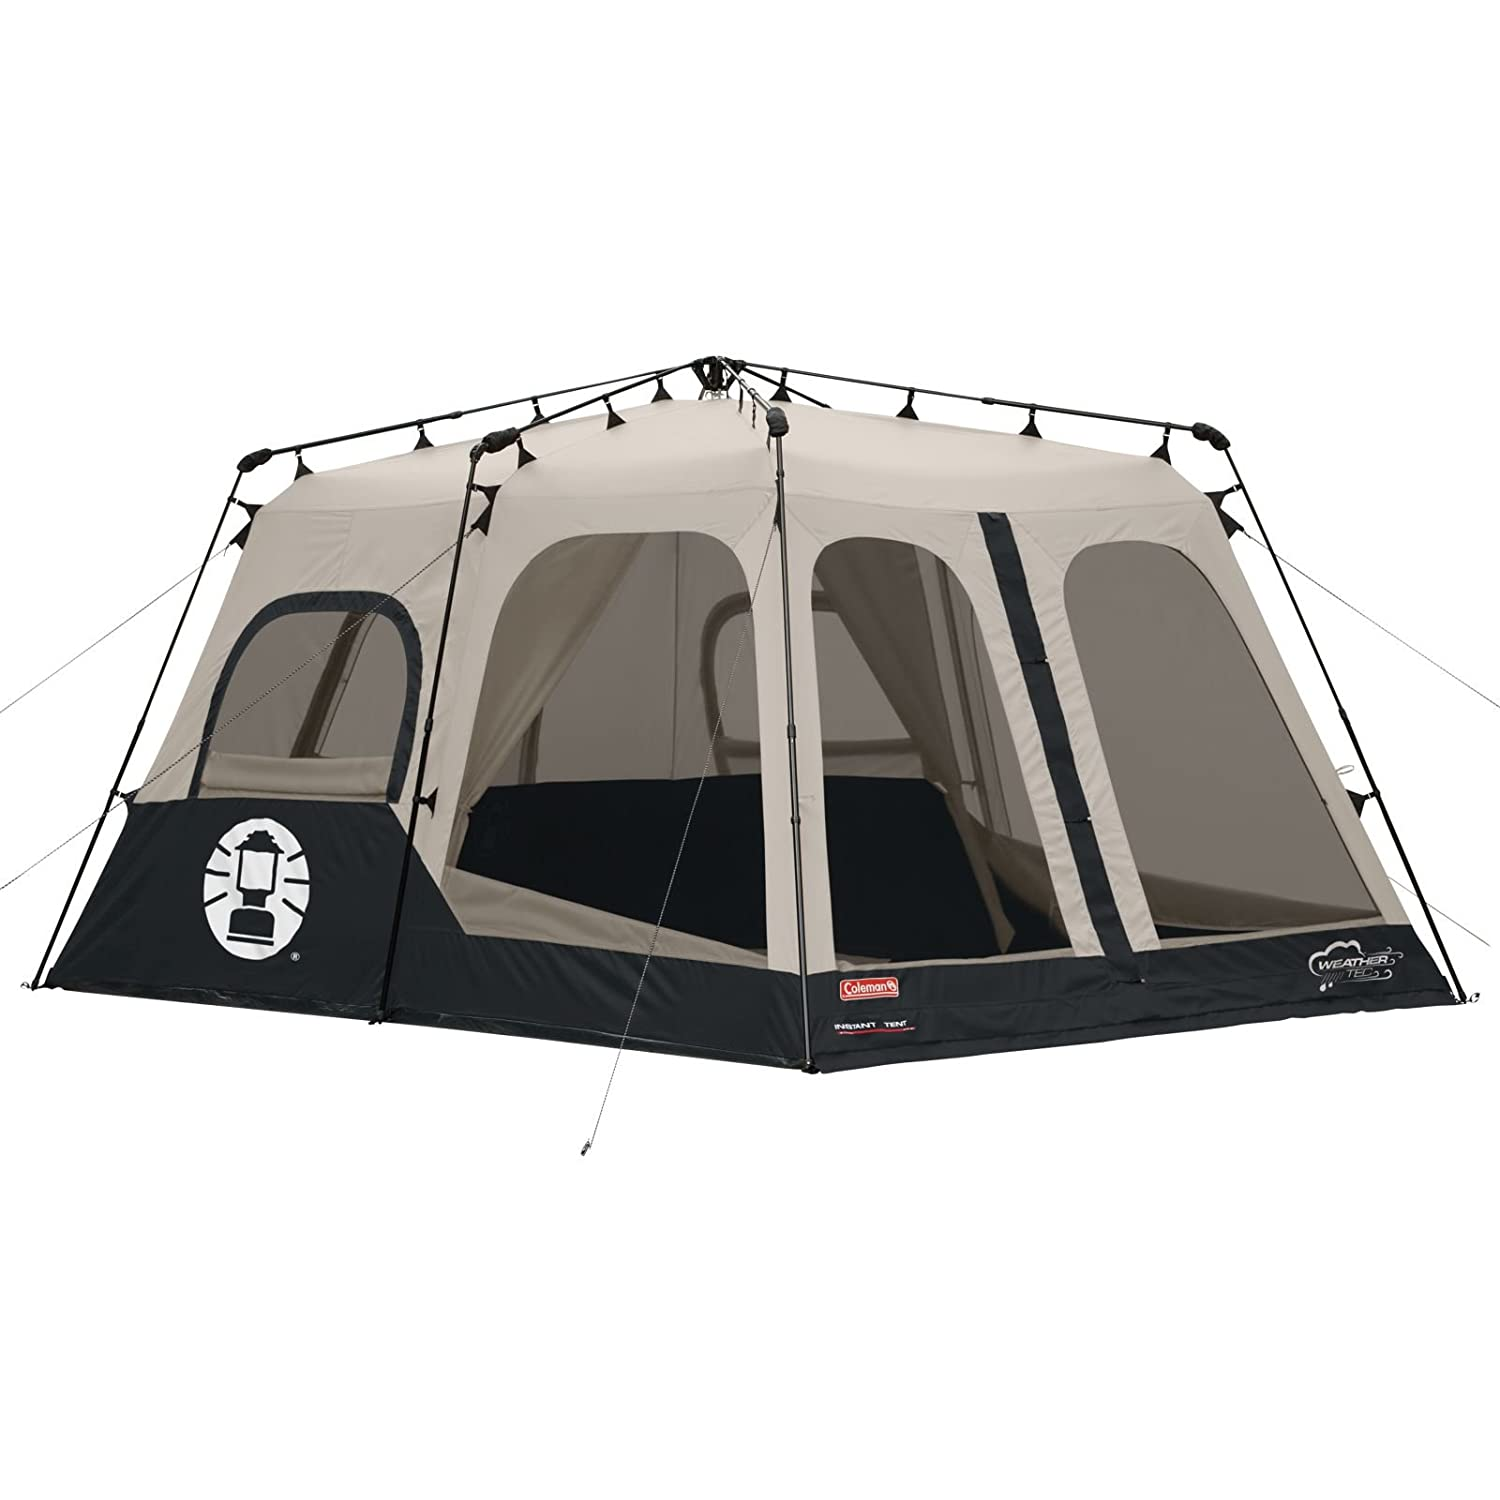 buy popular 9a225 95a41 Coleman 8-Person Tent | Instant Family Tent